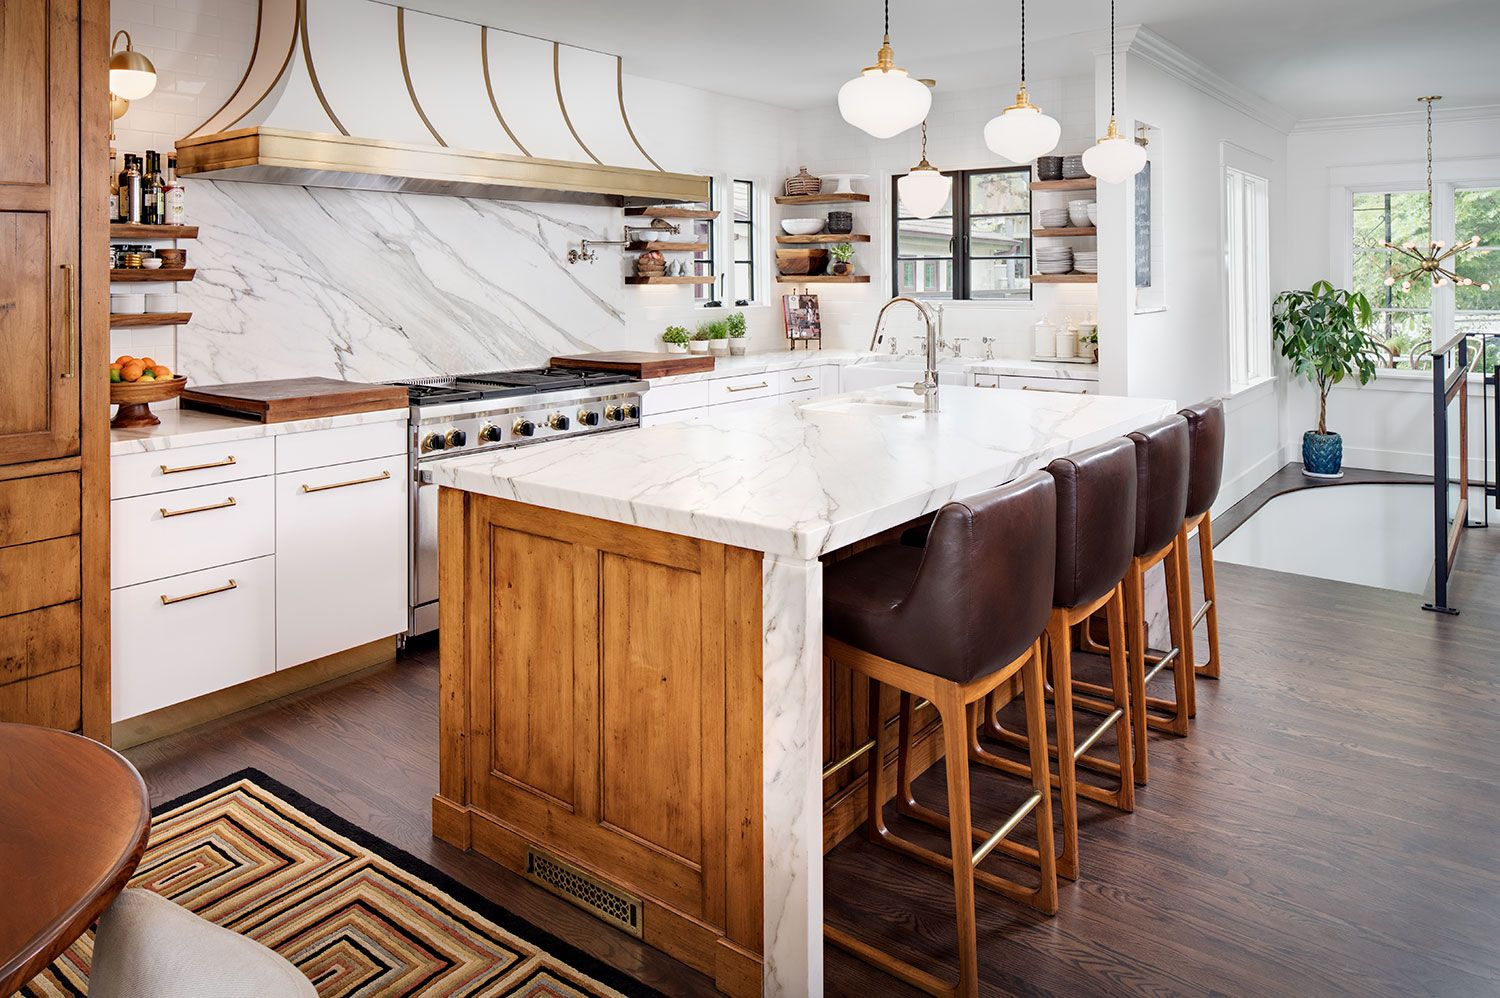 Mission Hills Project Chef S Dream Kitchen Kitchen And Bath Design Eclectic Kitchen Home